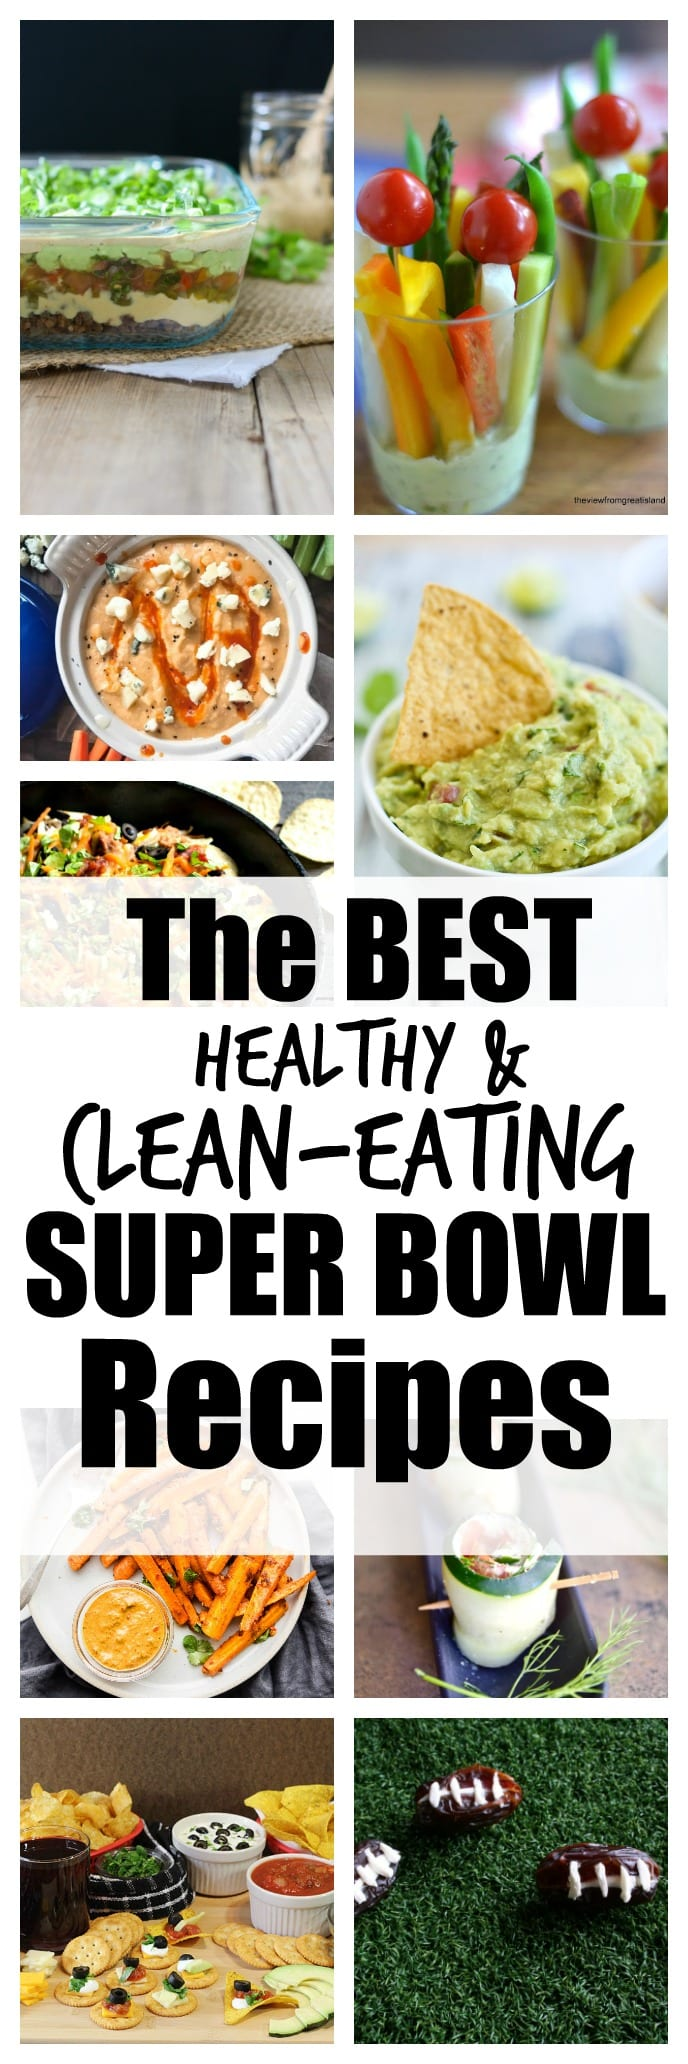 Healthy clean eating Super Bowl recipes. The ultimate list of healthy party food! Lots of gluten-free vegan and vegetarian recipes